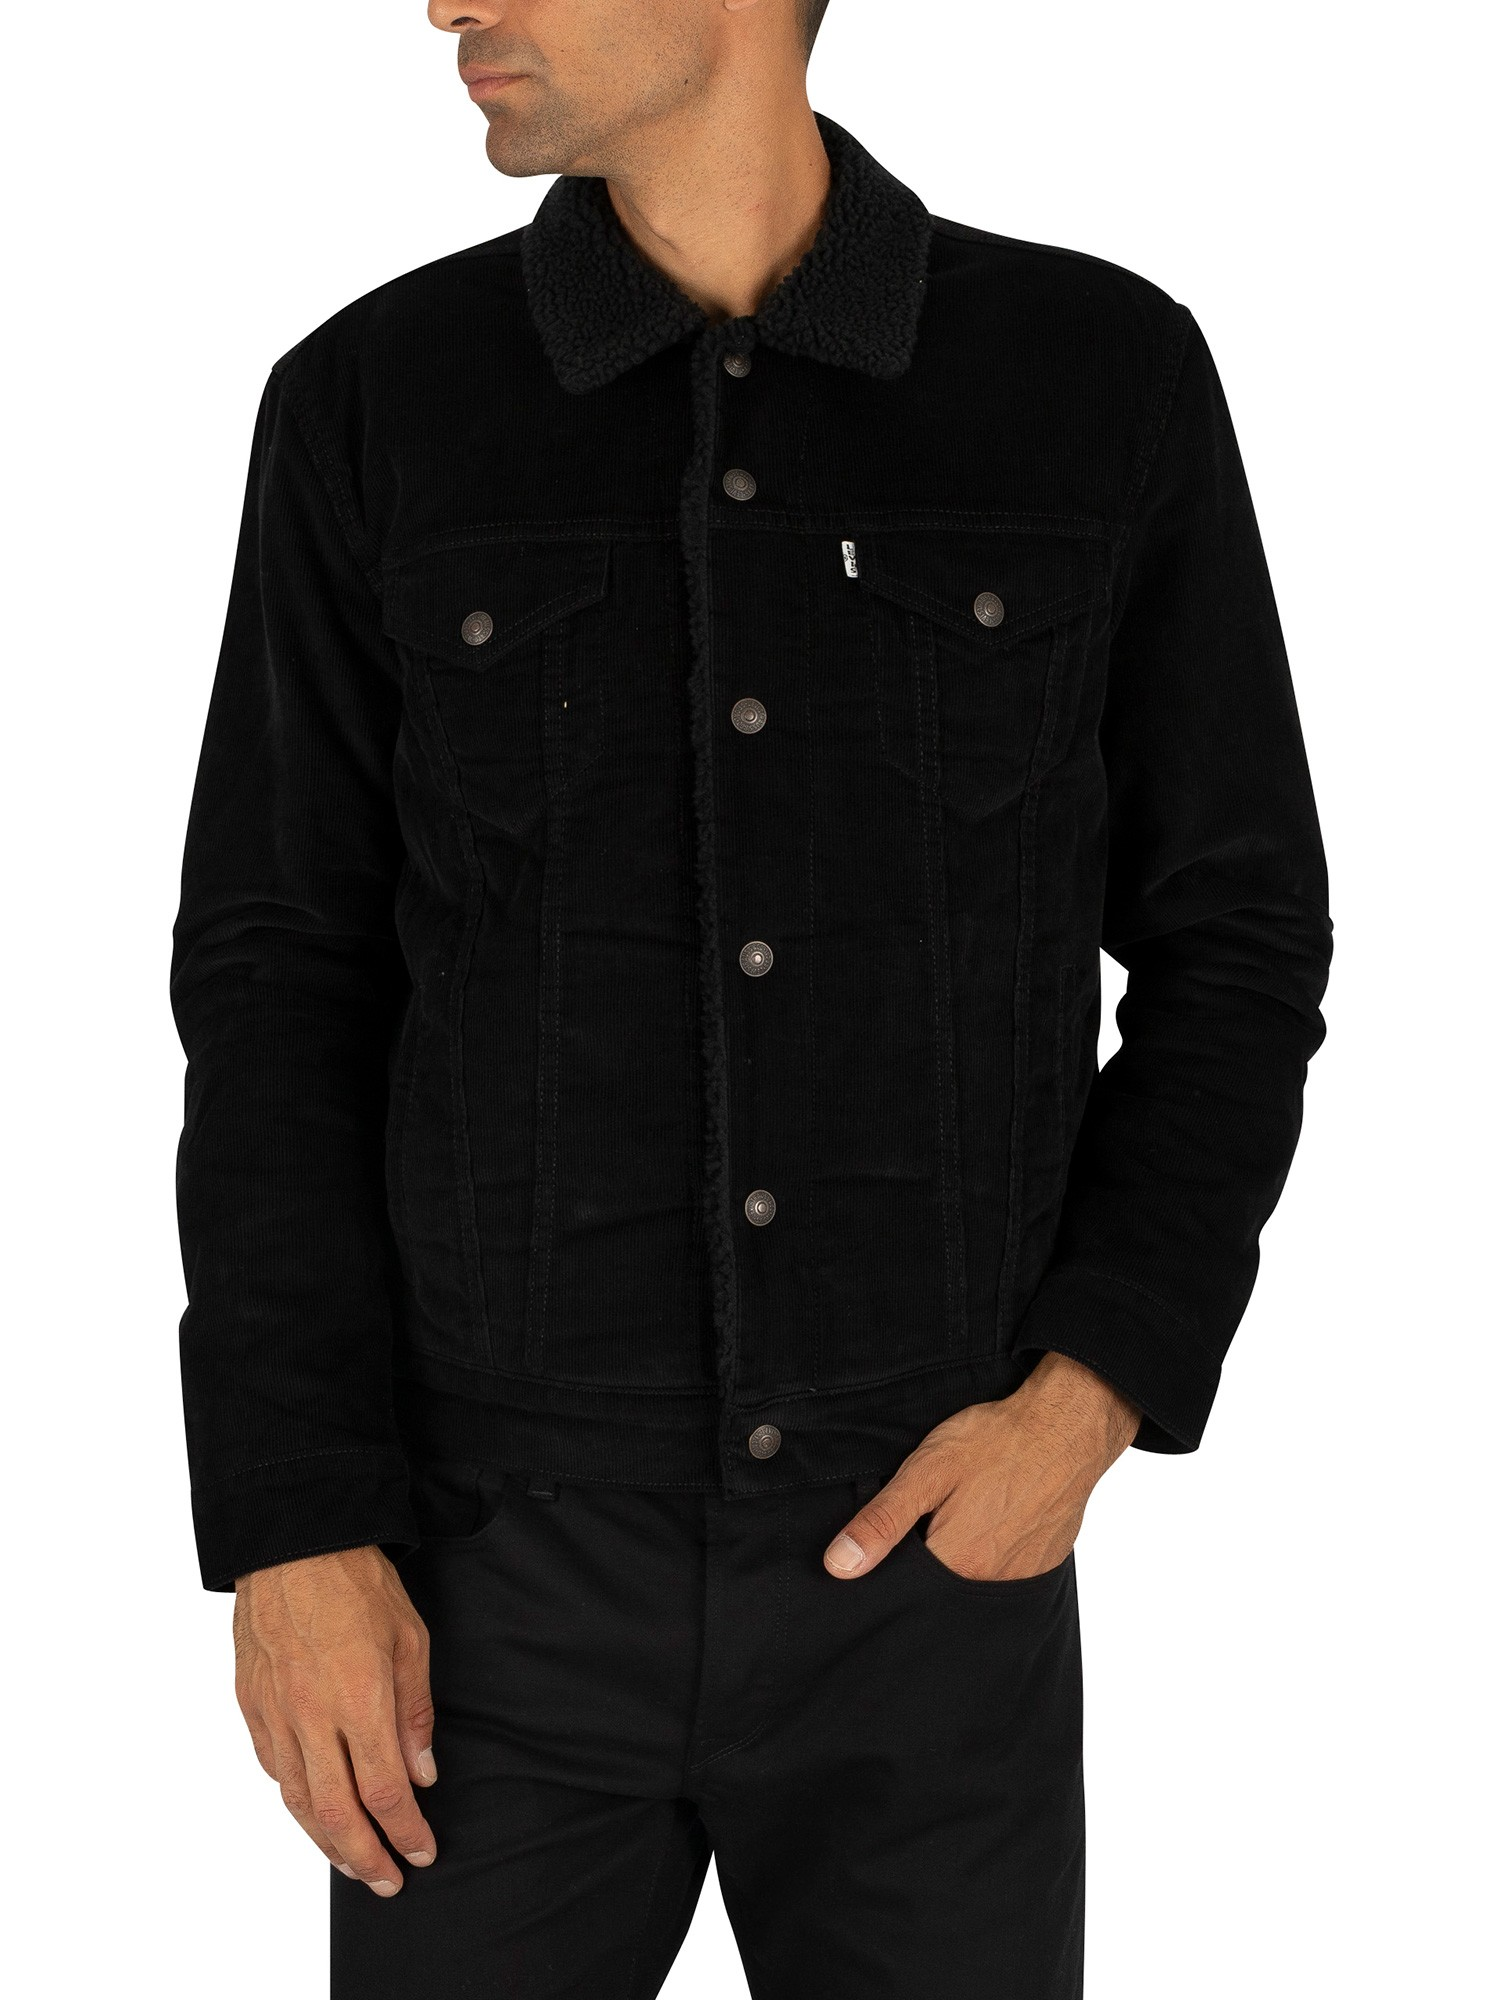 look for sale usa online classic style Levi's Type 3 Sherpa Trucker Jacket - Black Cord Better